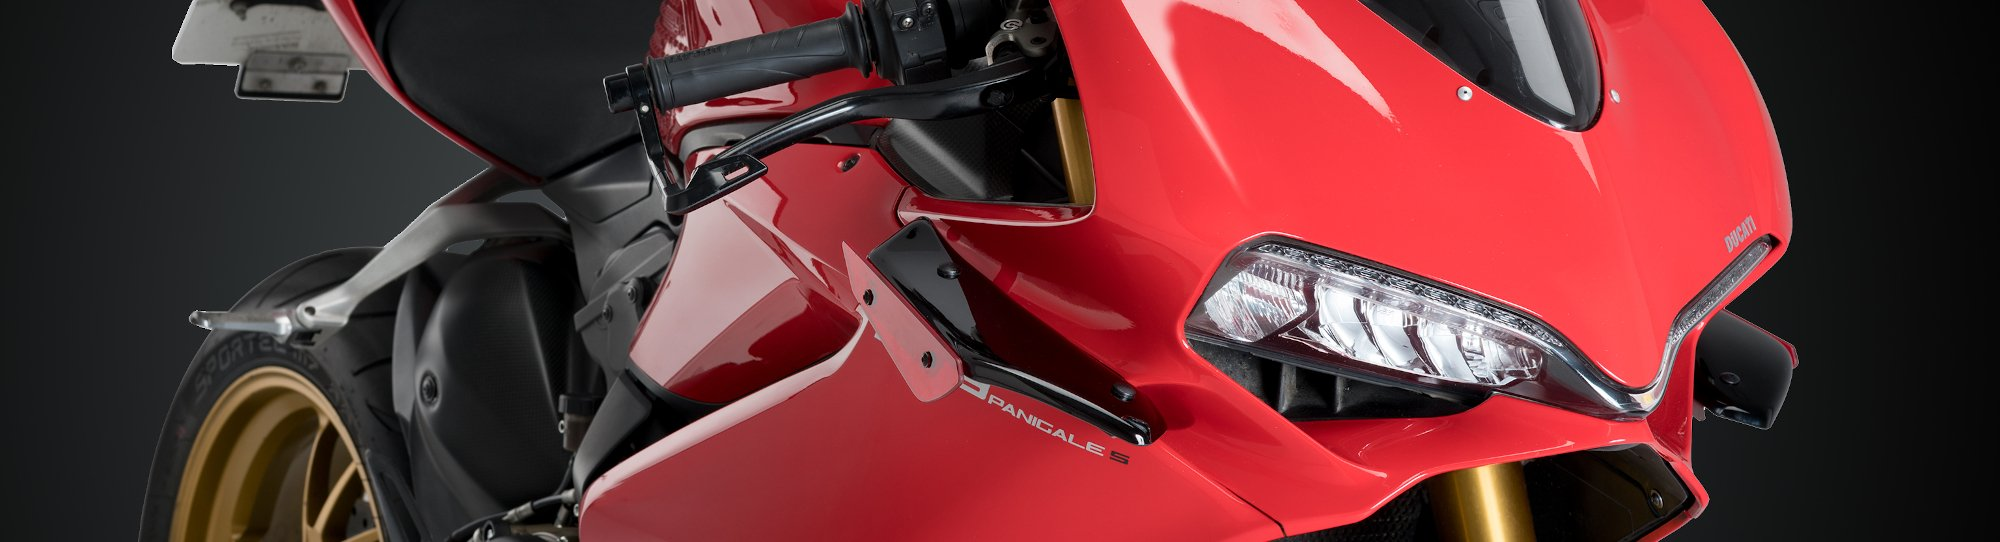 Puig Downforce Spoilers Ducati